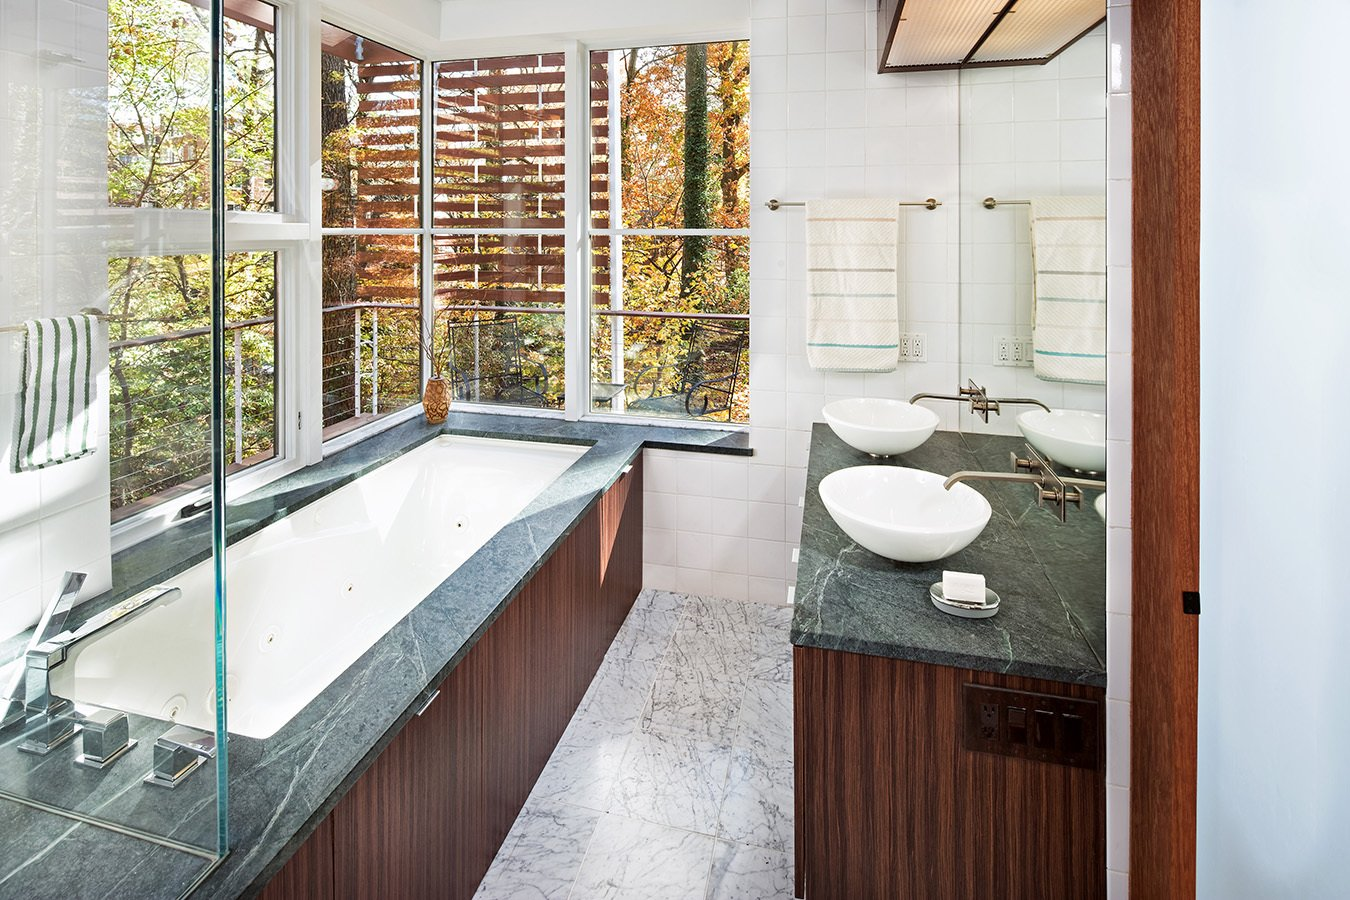 Bath Room, Granite Counter, Limestone Floor, Concrete Floor, Drop In Sink, Undermount Tub, Open Shower, Ceiling Lighting, Wall Lighting, Recessed Lighting, Subway Tile Wall, and One Piece Toilet Master Bath  Home for Sale: Takoma Park House